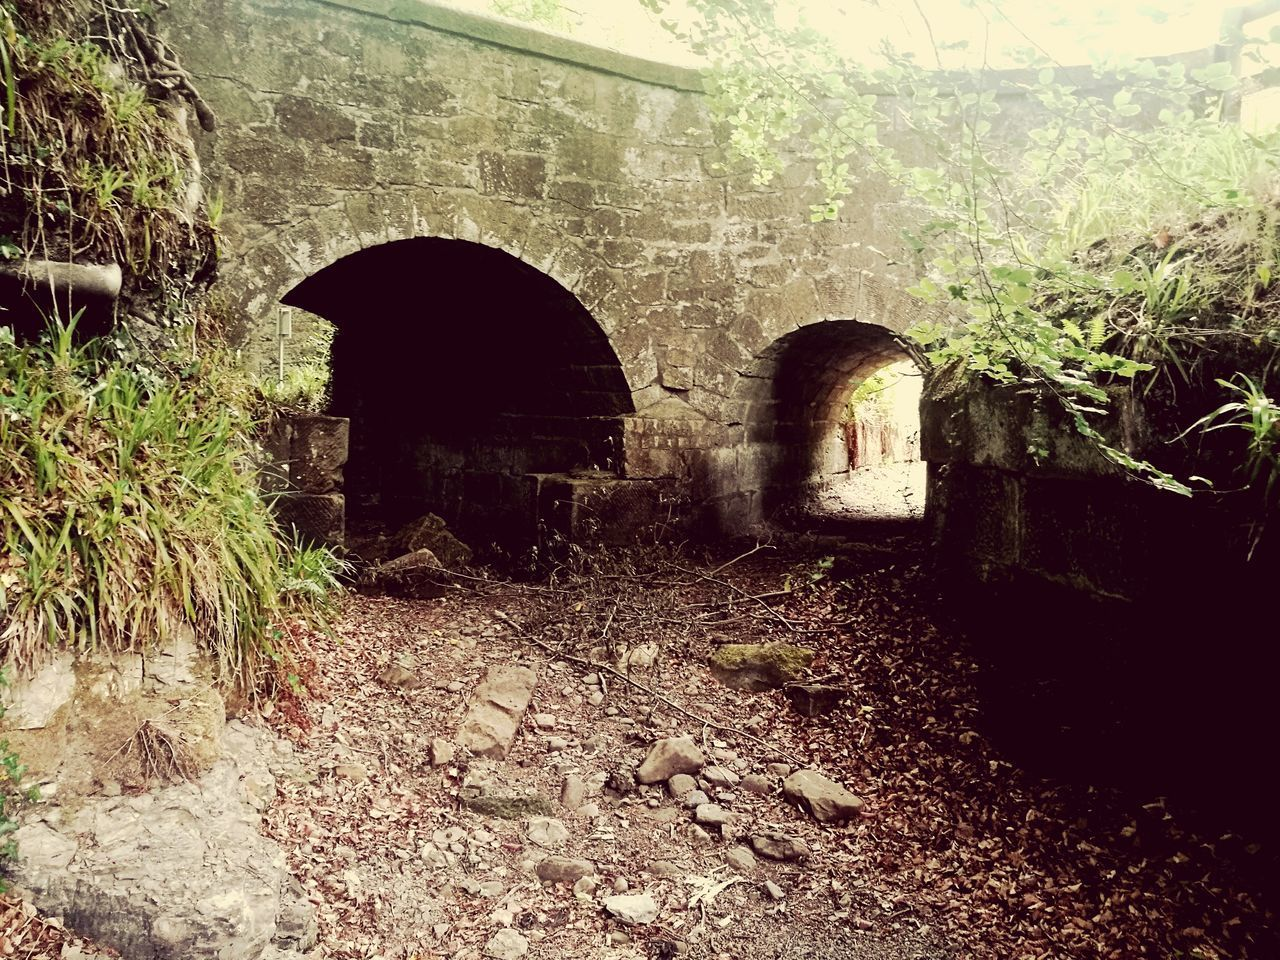 Rosslyn Glen Gunpowder Mill Architecture Built Structure Day No People Building Exterior Outdoors Reclaimed By Nature Abandoned & Derelict Ruins Ruins Architecture Tree Sunlight Growth Ruins Of A Past Bridges Tunnel Vision Tunnel View Which Direction? The Great Outdoors - 2017 EyeEm Awards